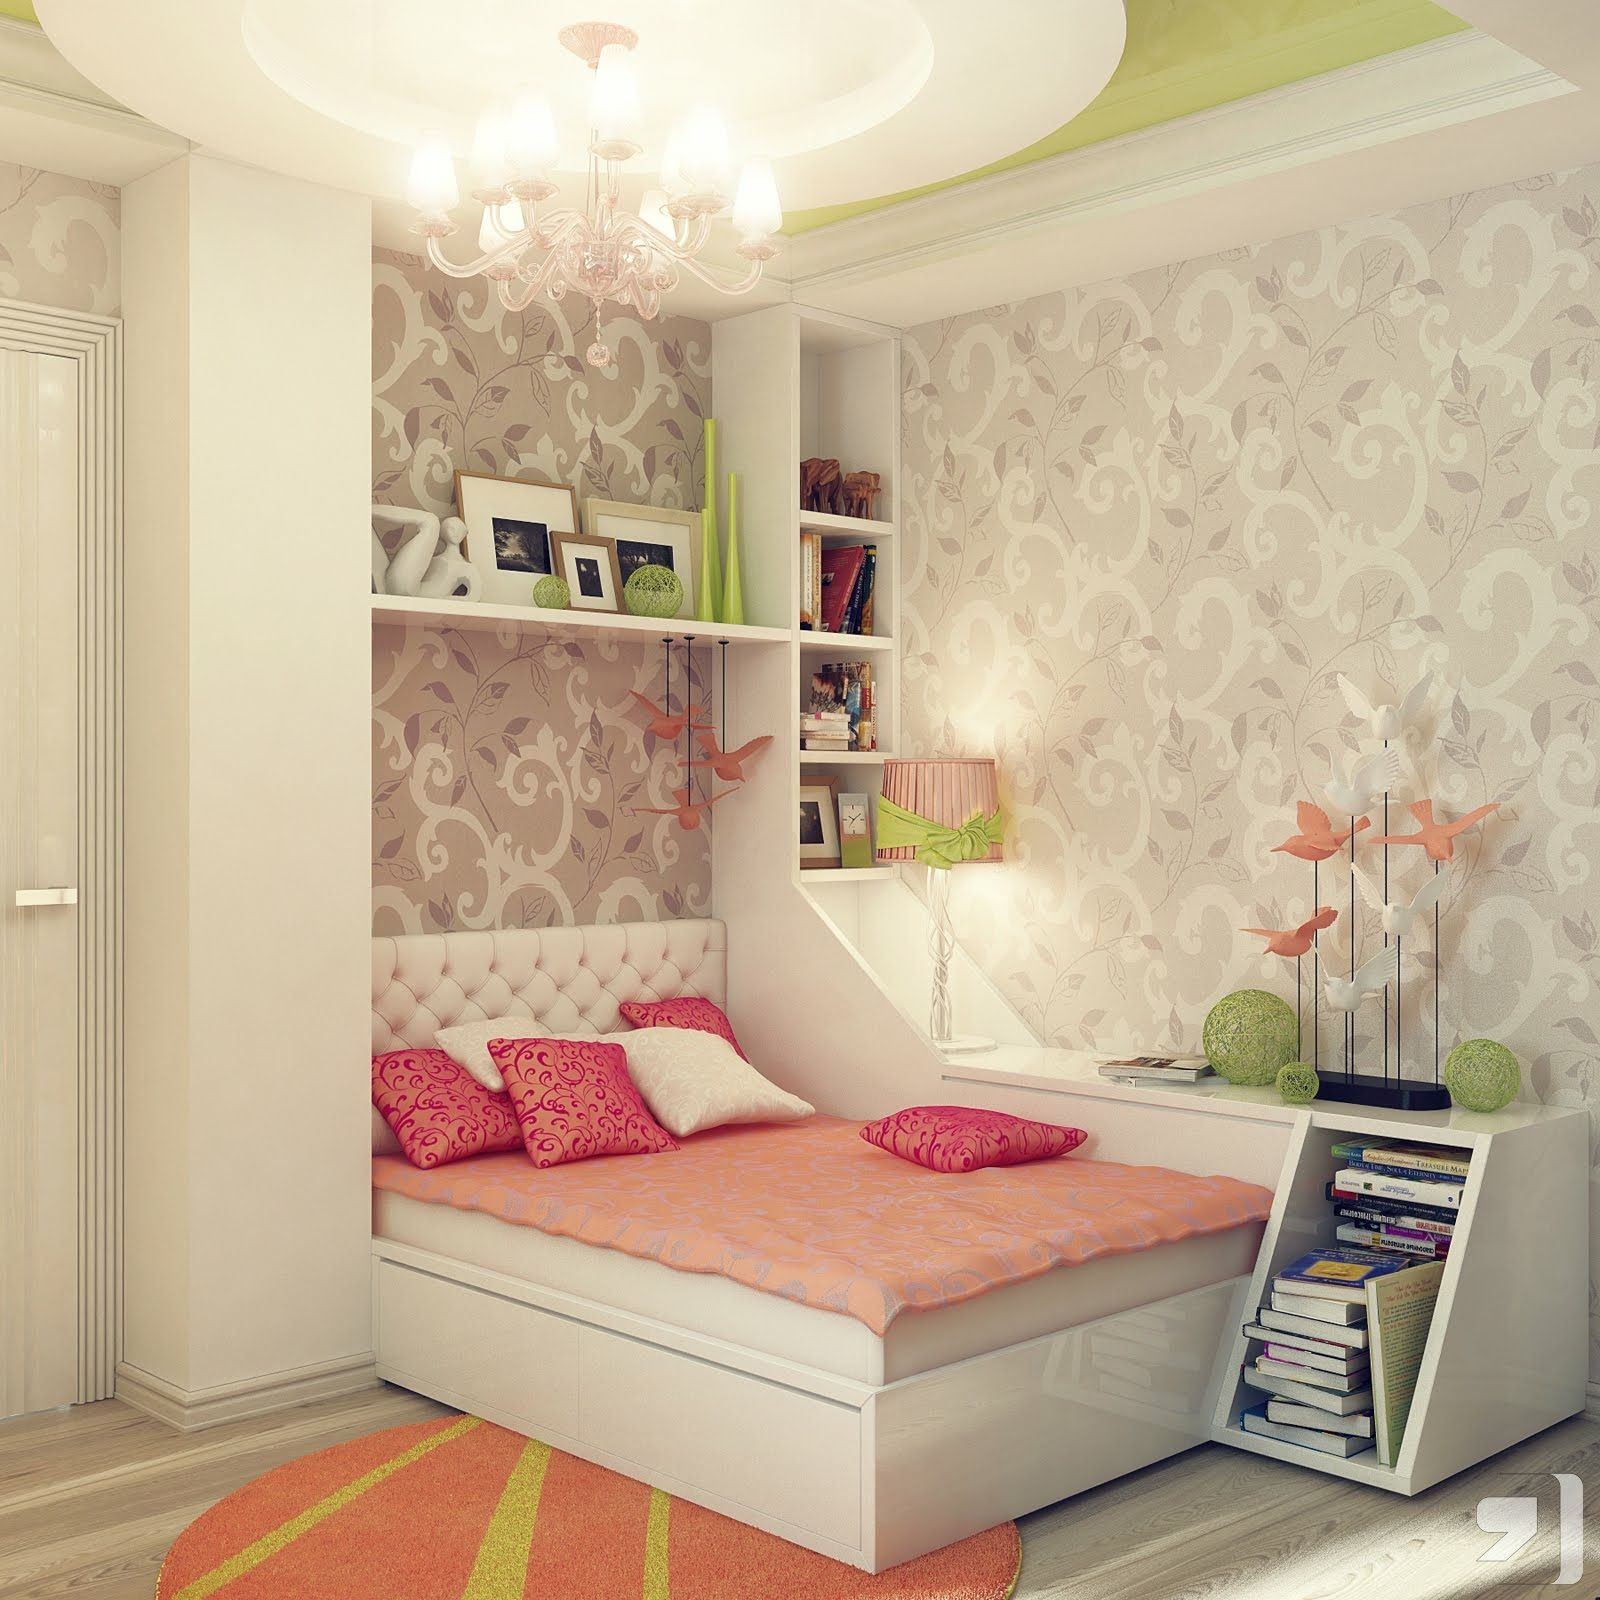 teen room decorating ideas apple green offset the sweet candyfloss shades elsewhere - Girls Bedroom Decorating Ideas